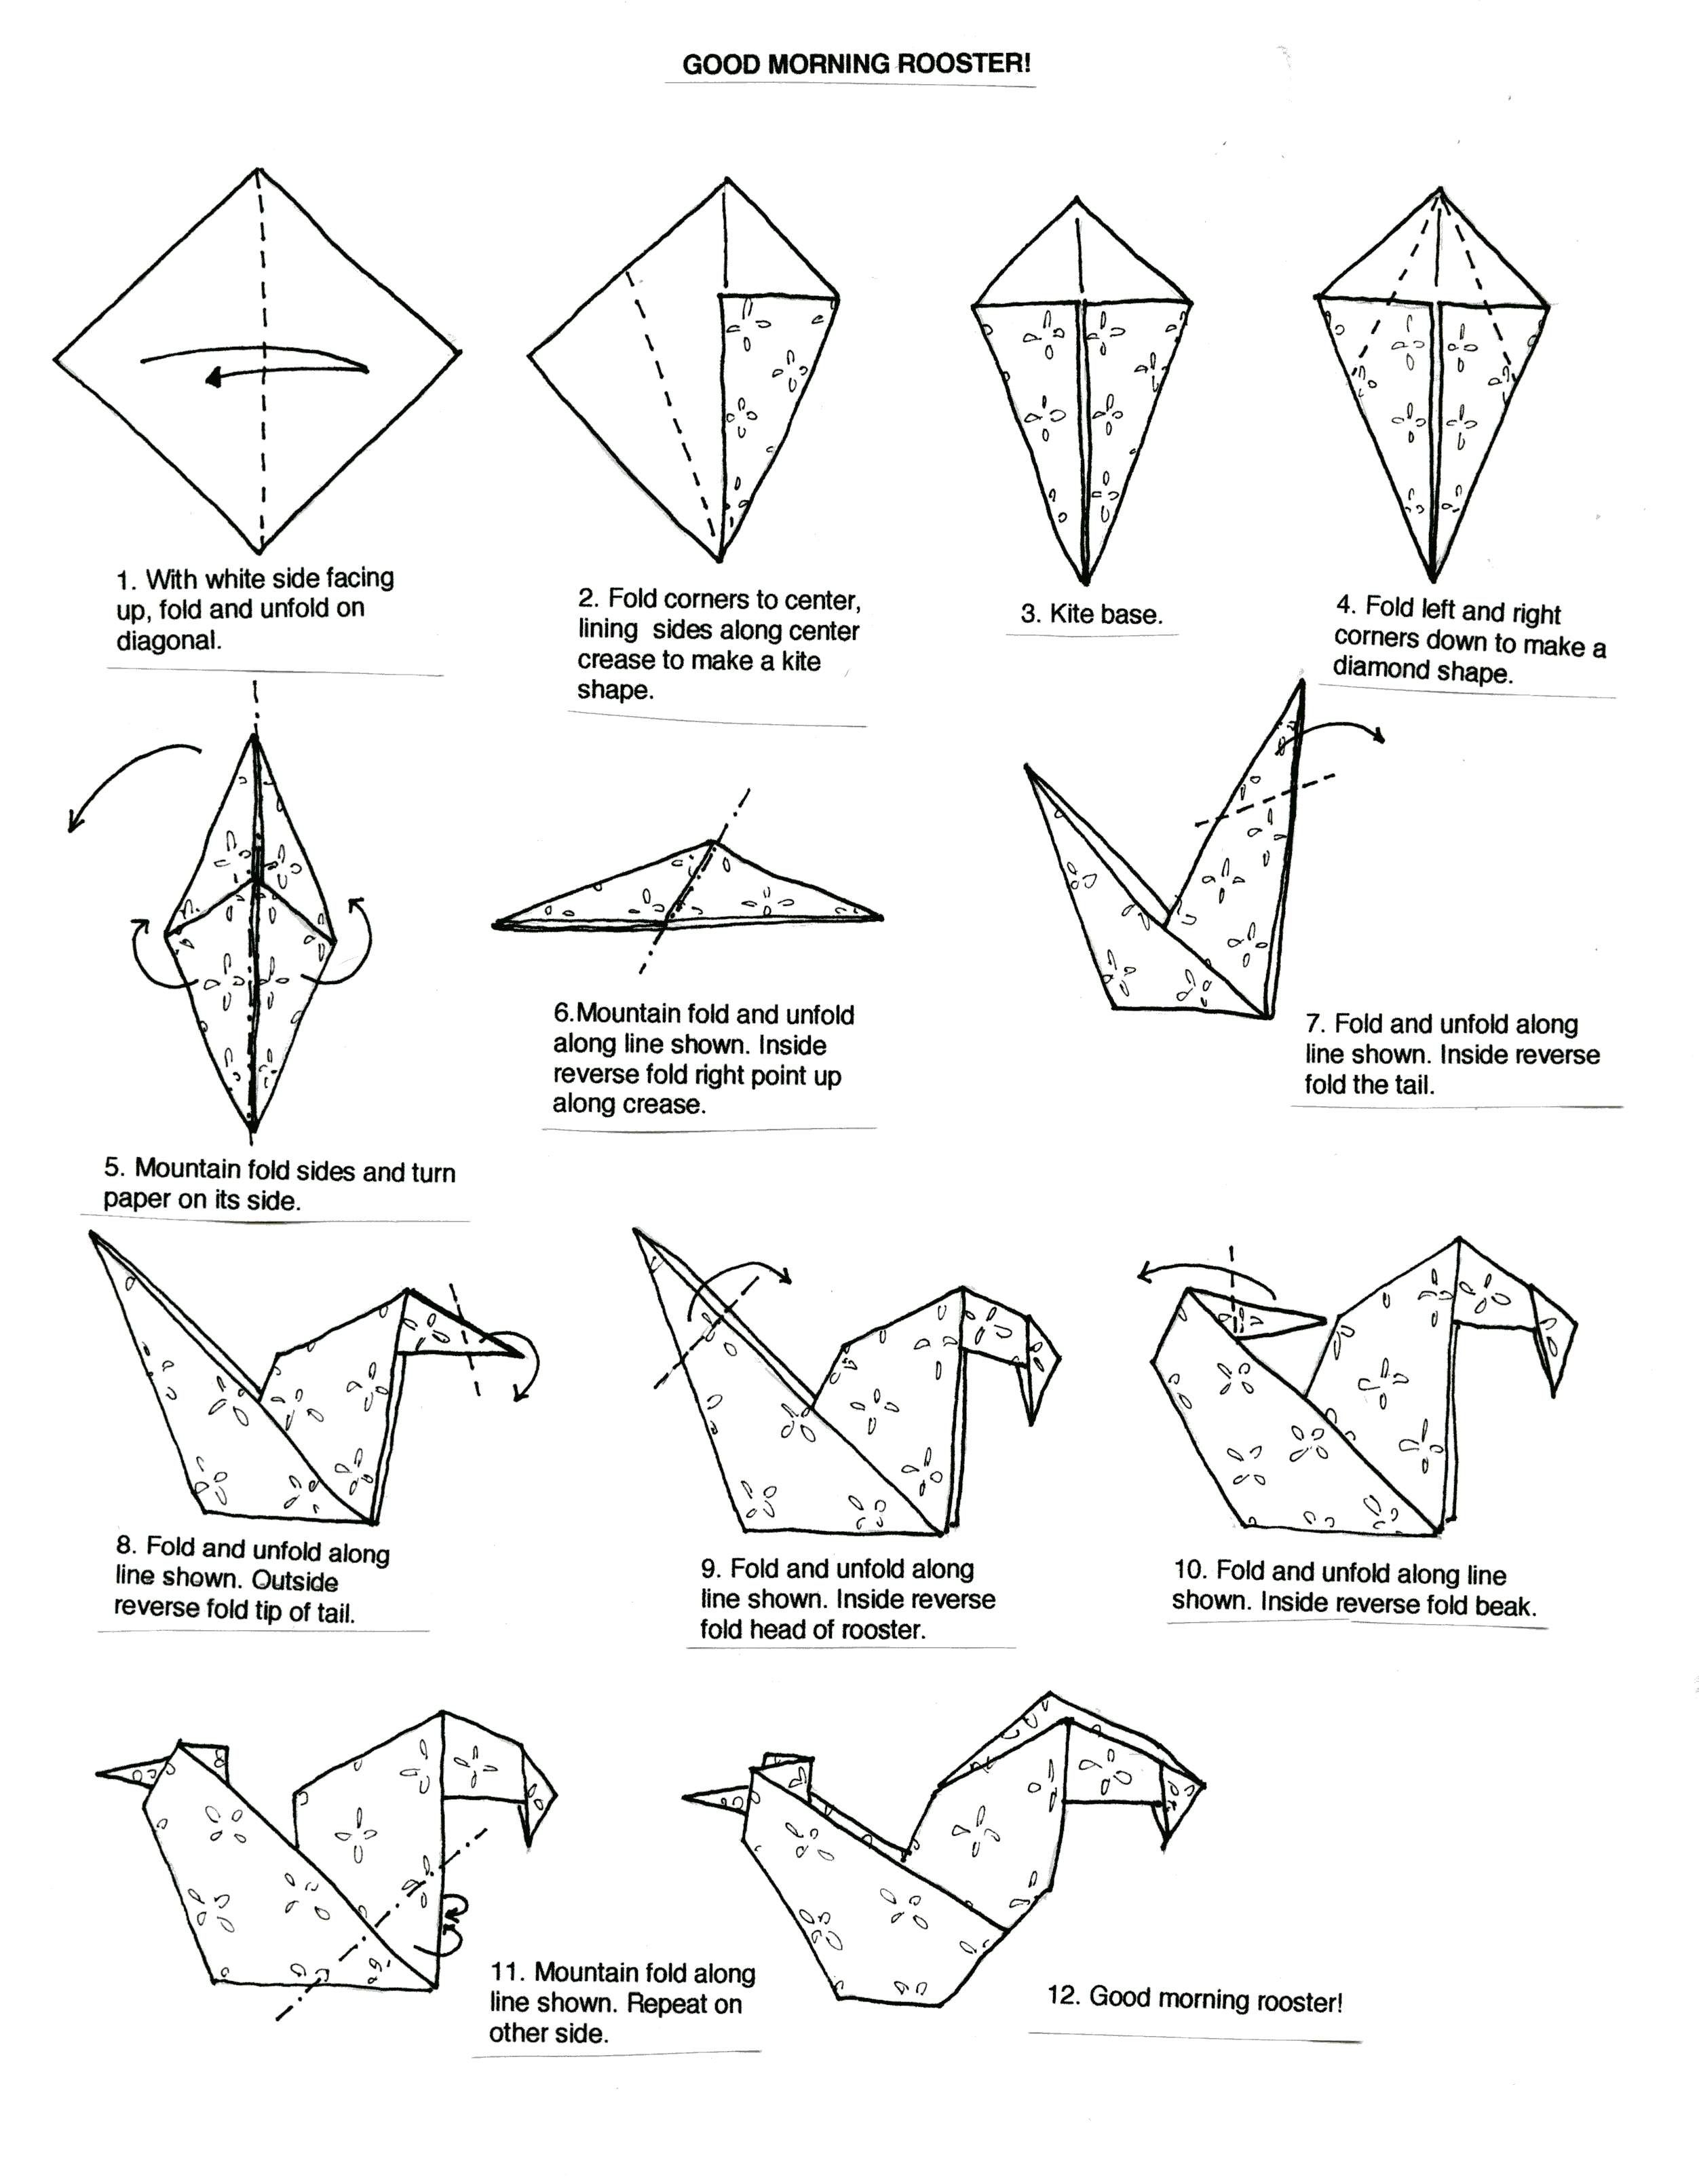 origami instructions lipatlipat pinterest origami origami rh pinterest com origami rose diagram instructions origami dragon diagram instructions